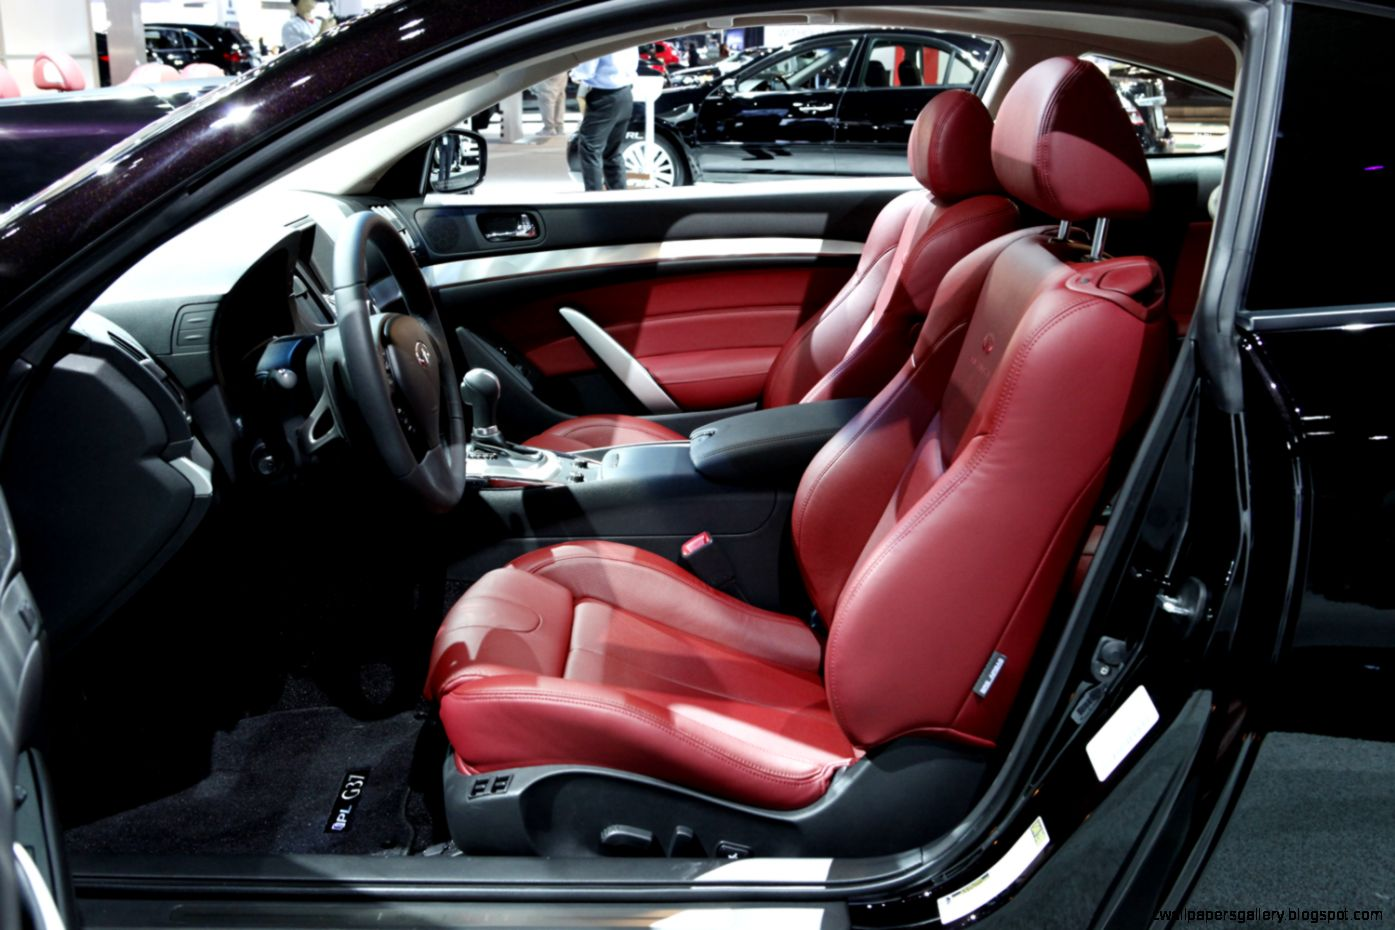 Variants In The Infiniti G Series Of Mid Size Entry Level Luxury Cars